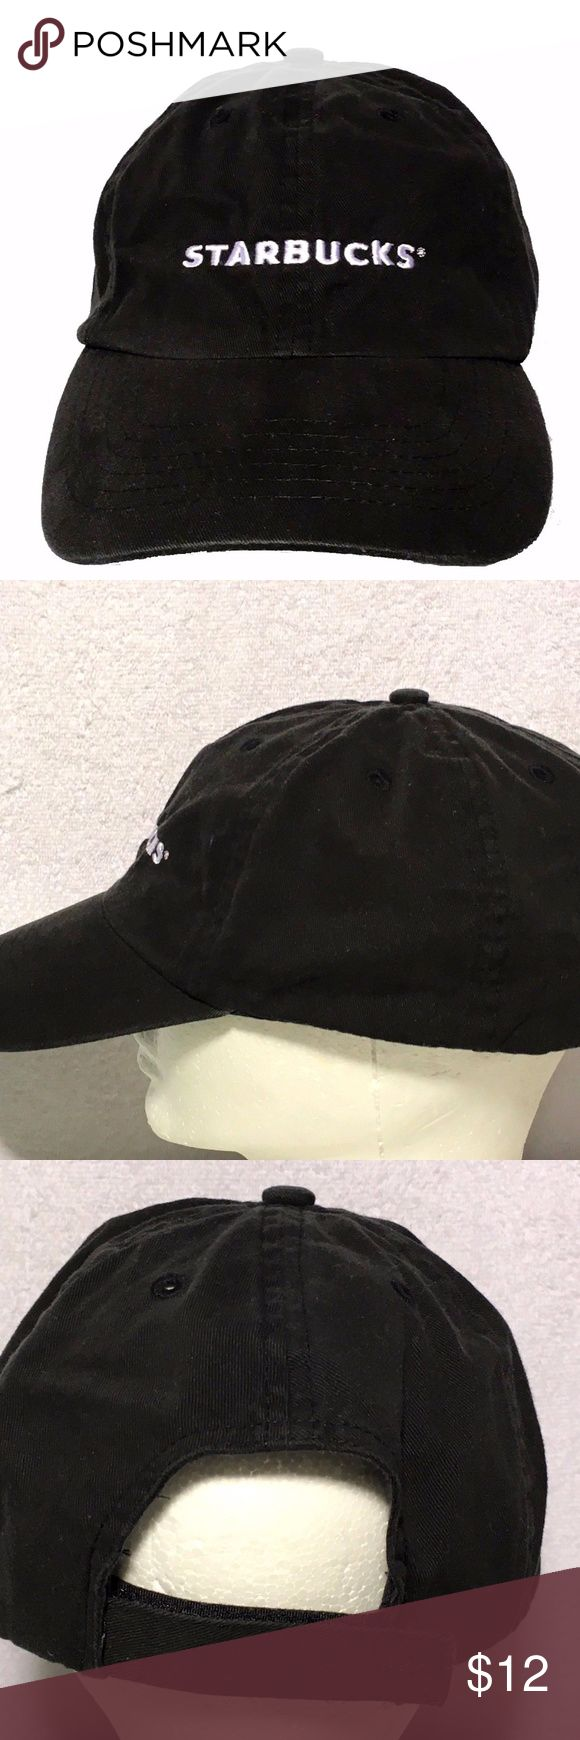 Starbucks Employee Embroidered Adjustable Hat Very good conditon employee hat from Starbucks. Adjustable. All black, all cotton. Made by Cintas for Starbucks employees. Please wash before wearing.  Shipping includes tracking number and delivery confirmation.  NO sales tax.  Thank you for viewing. cintas Accessories Hats